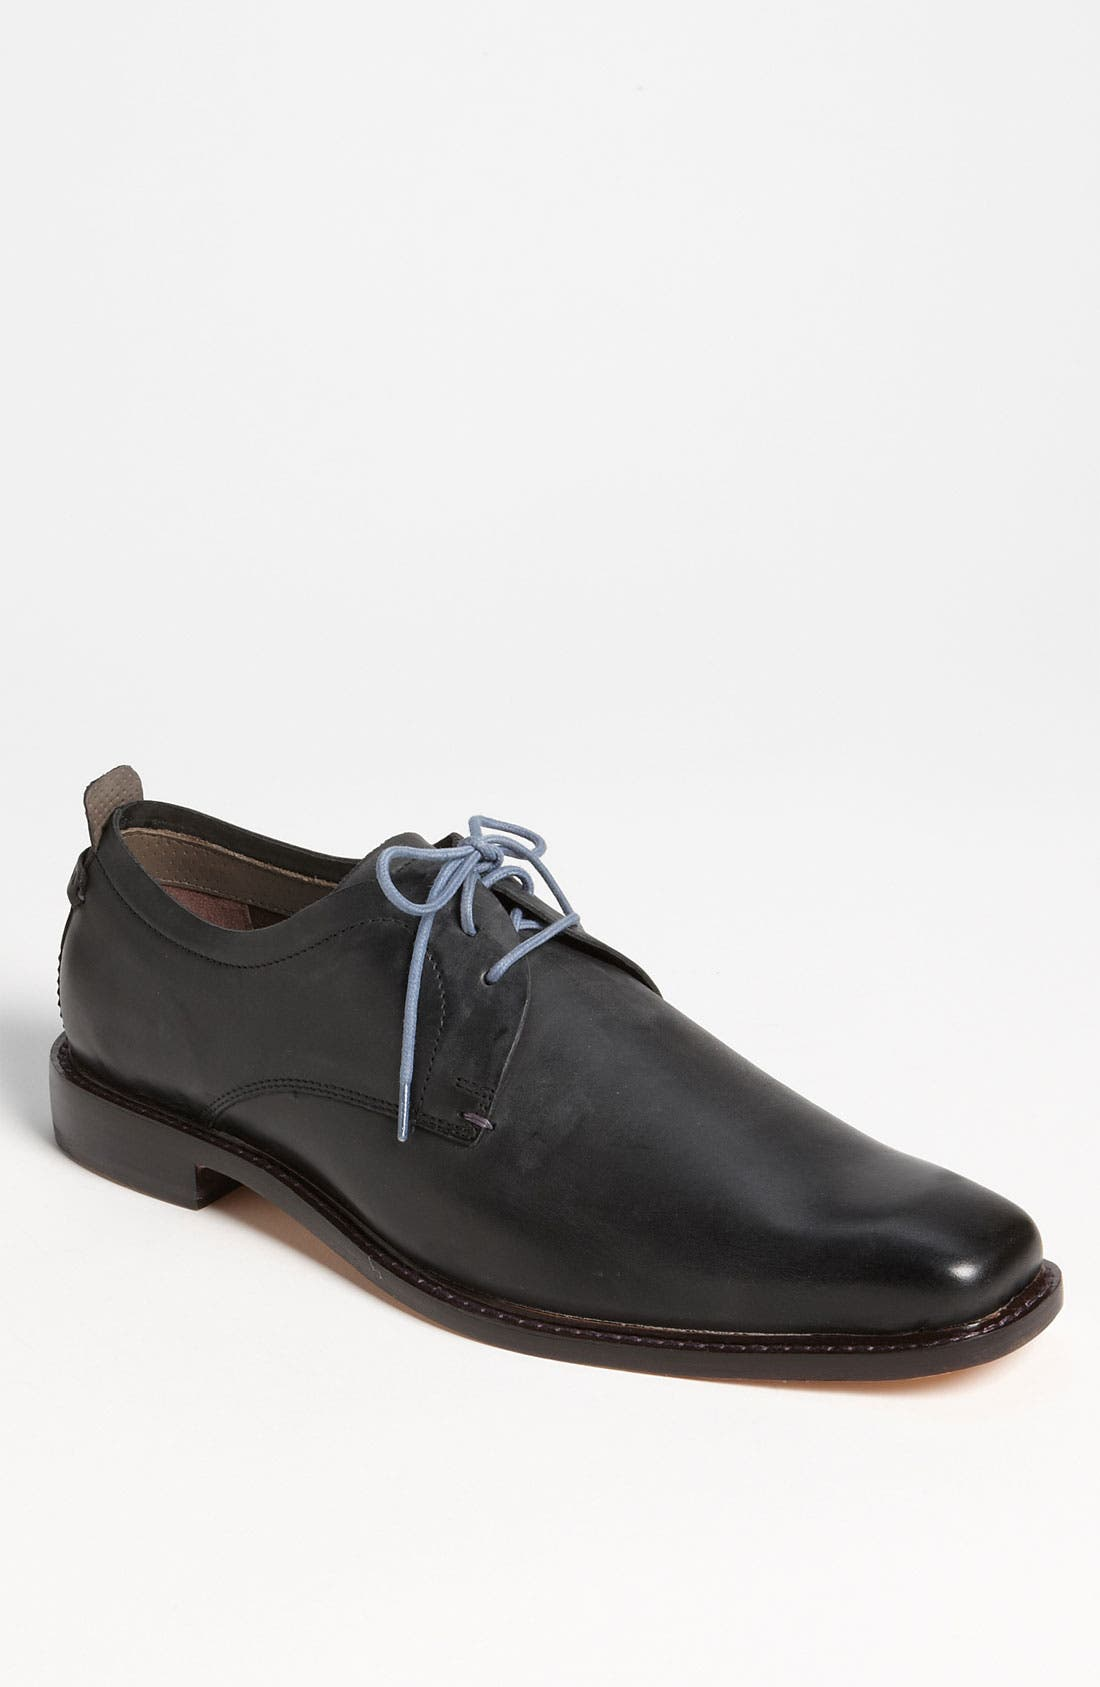 Alternate Image 1 Selected - Ted Baker London 'Aeolian' Oxford